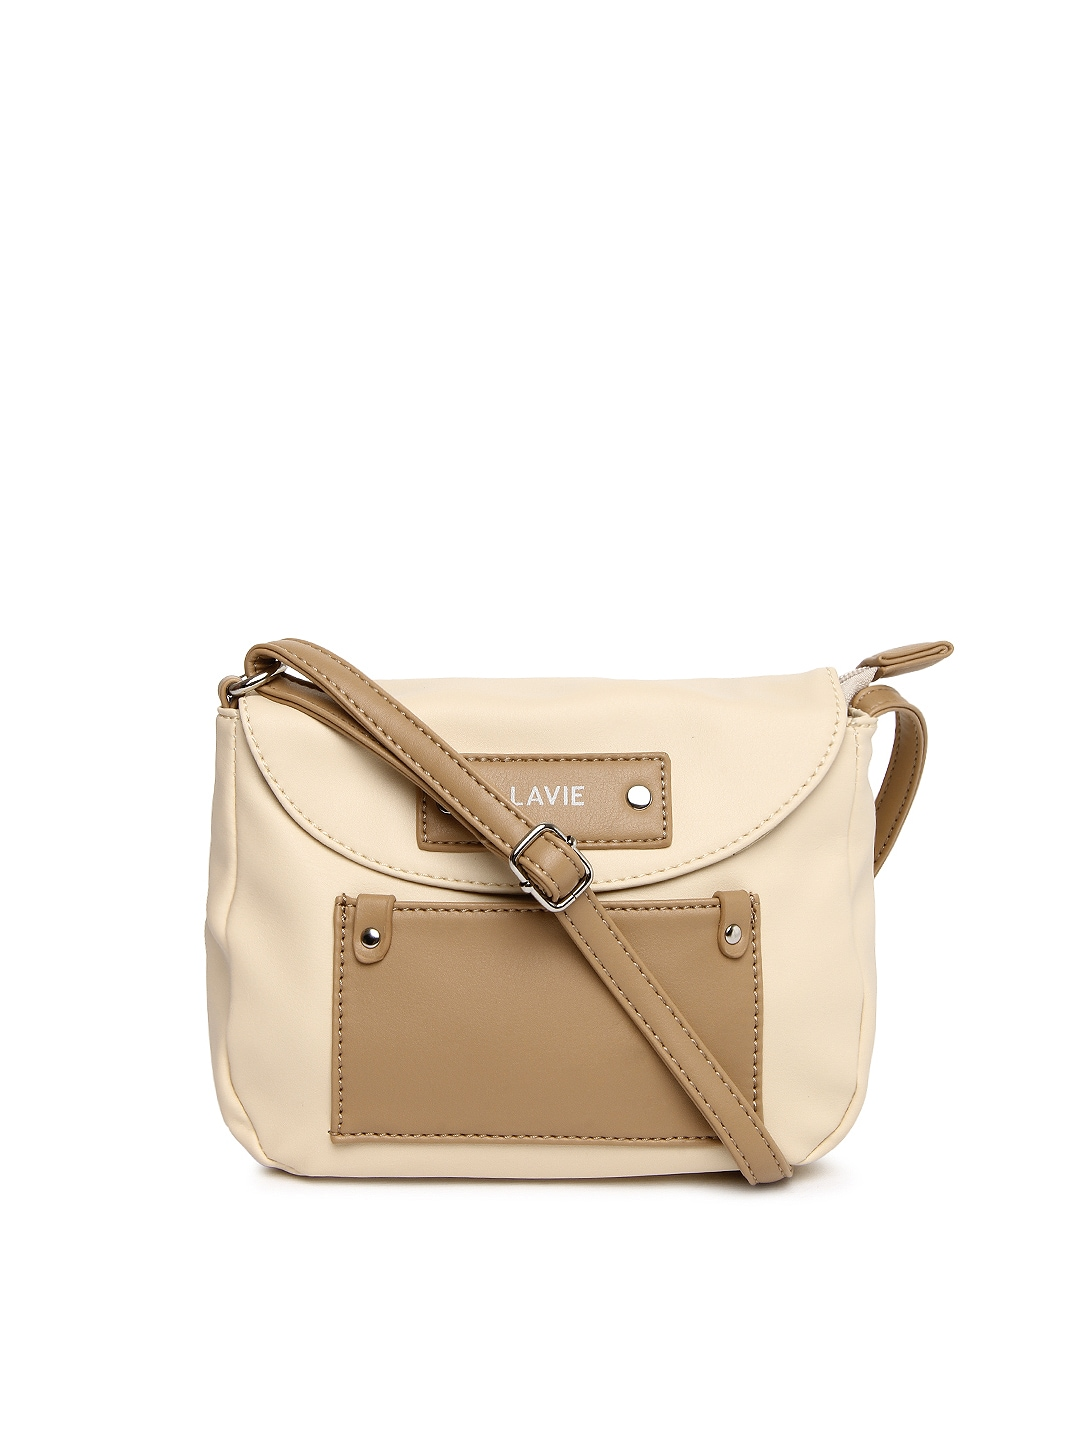 Buy Lavie Peach Coloured Sling Bag - Handbags for Women | Myntra